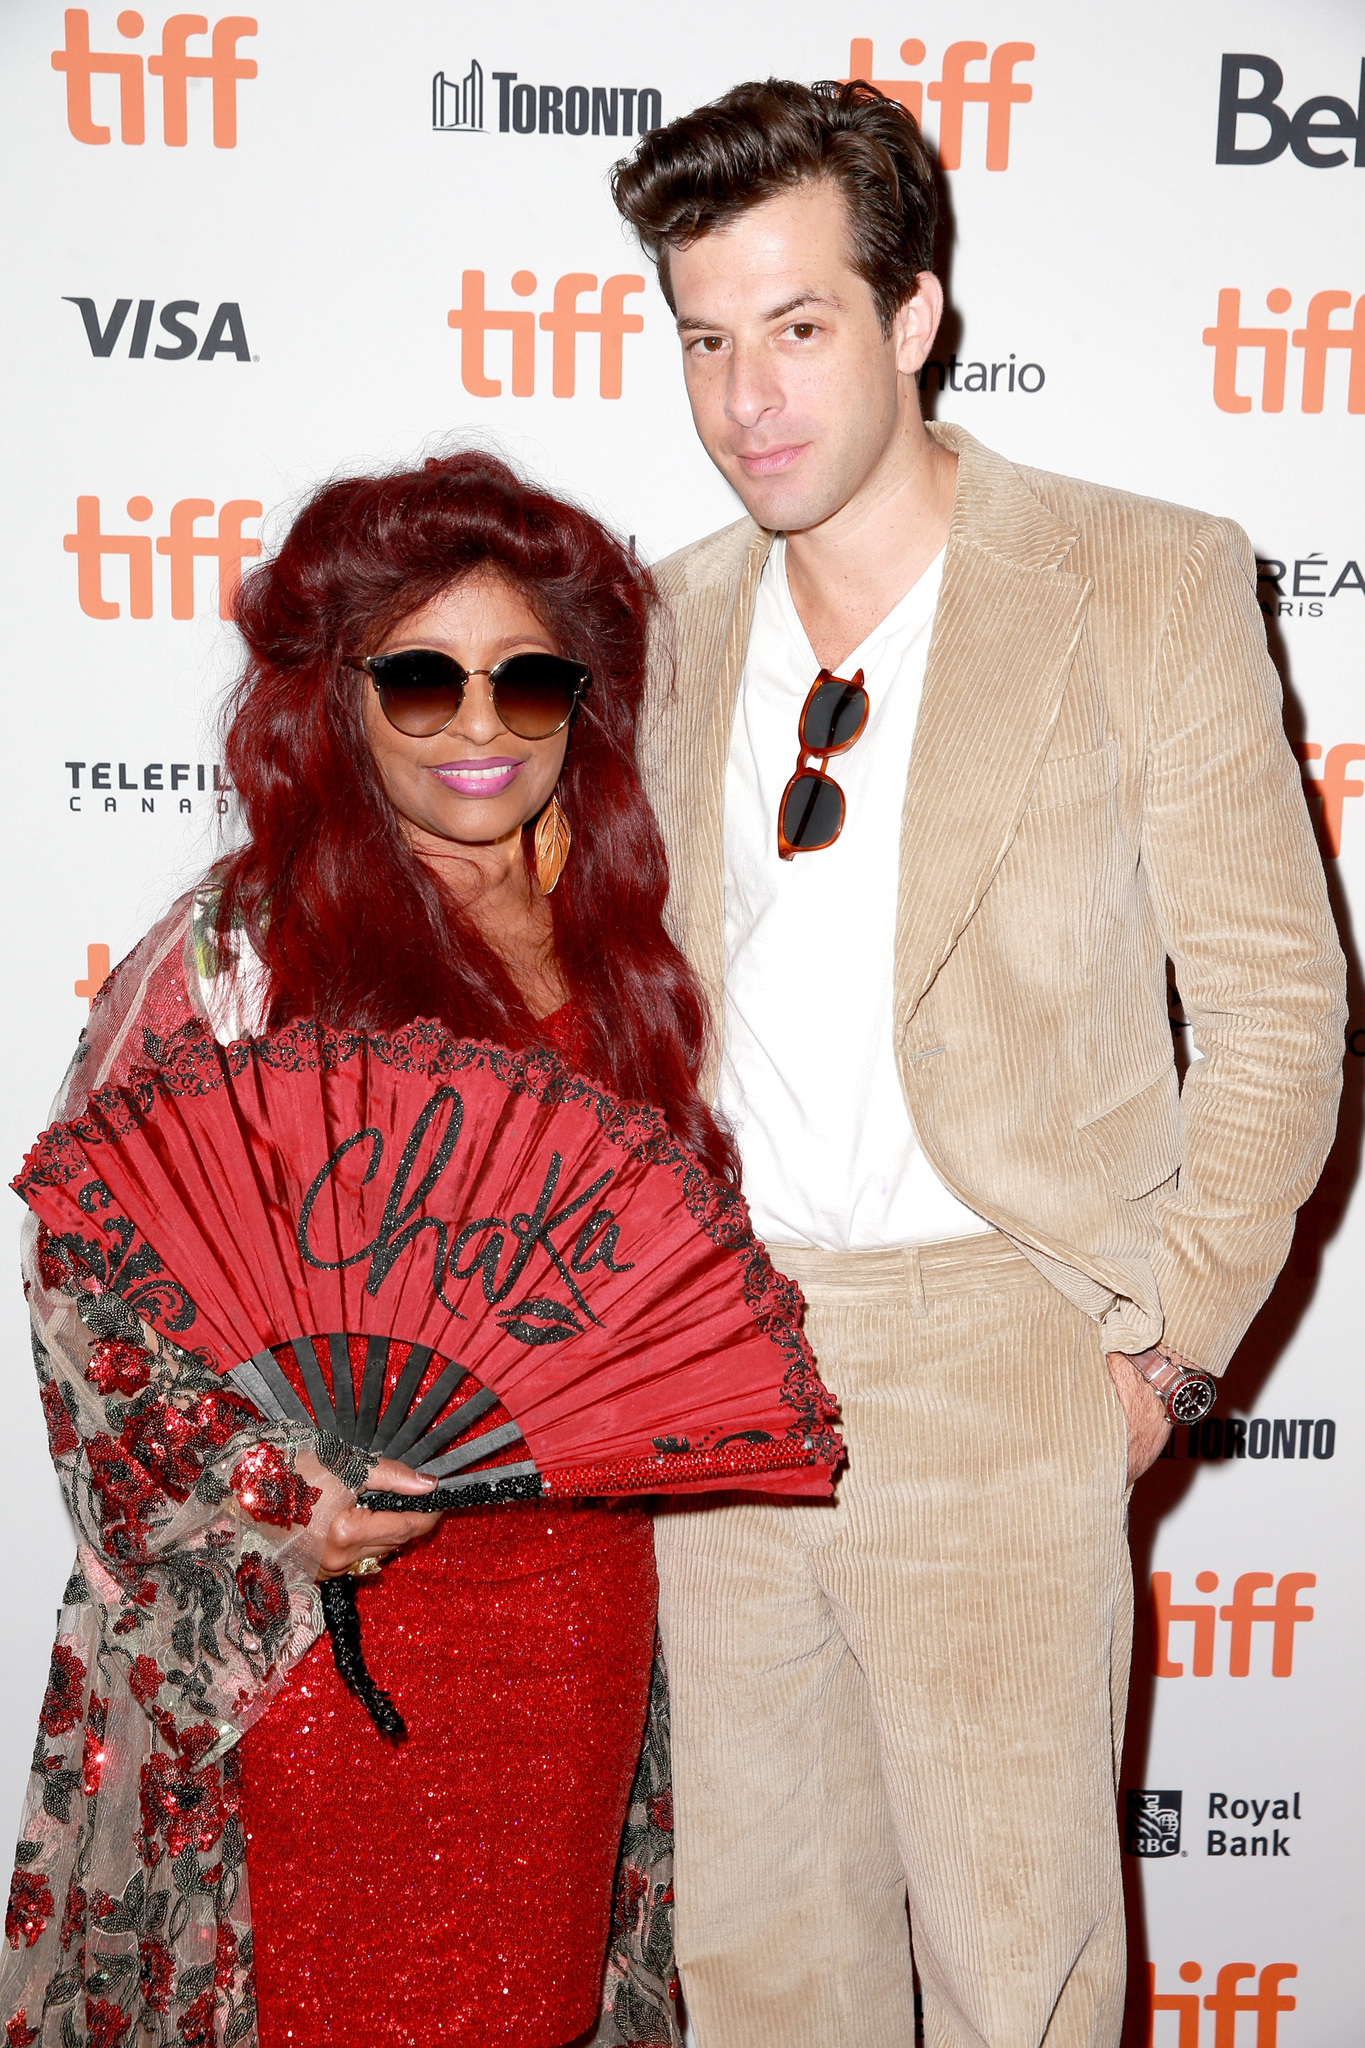 Chaka Khan and Mark Ronson at an event for Quincy (2018)